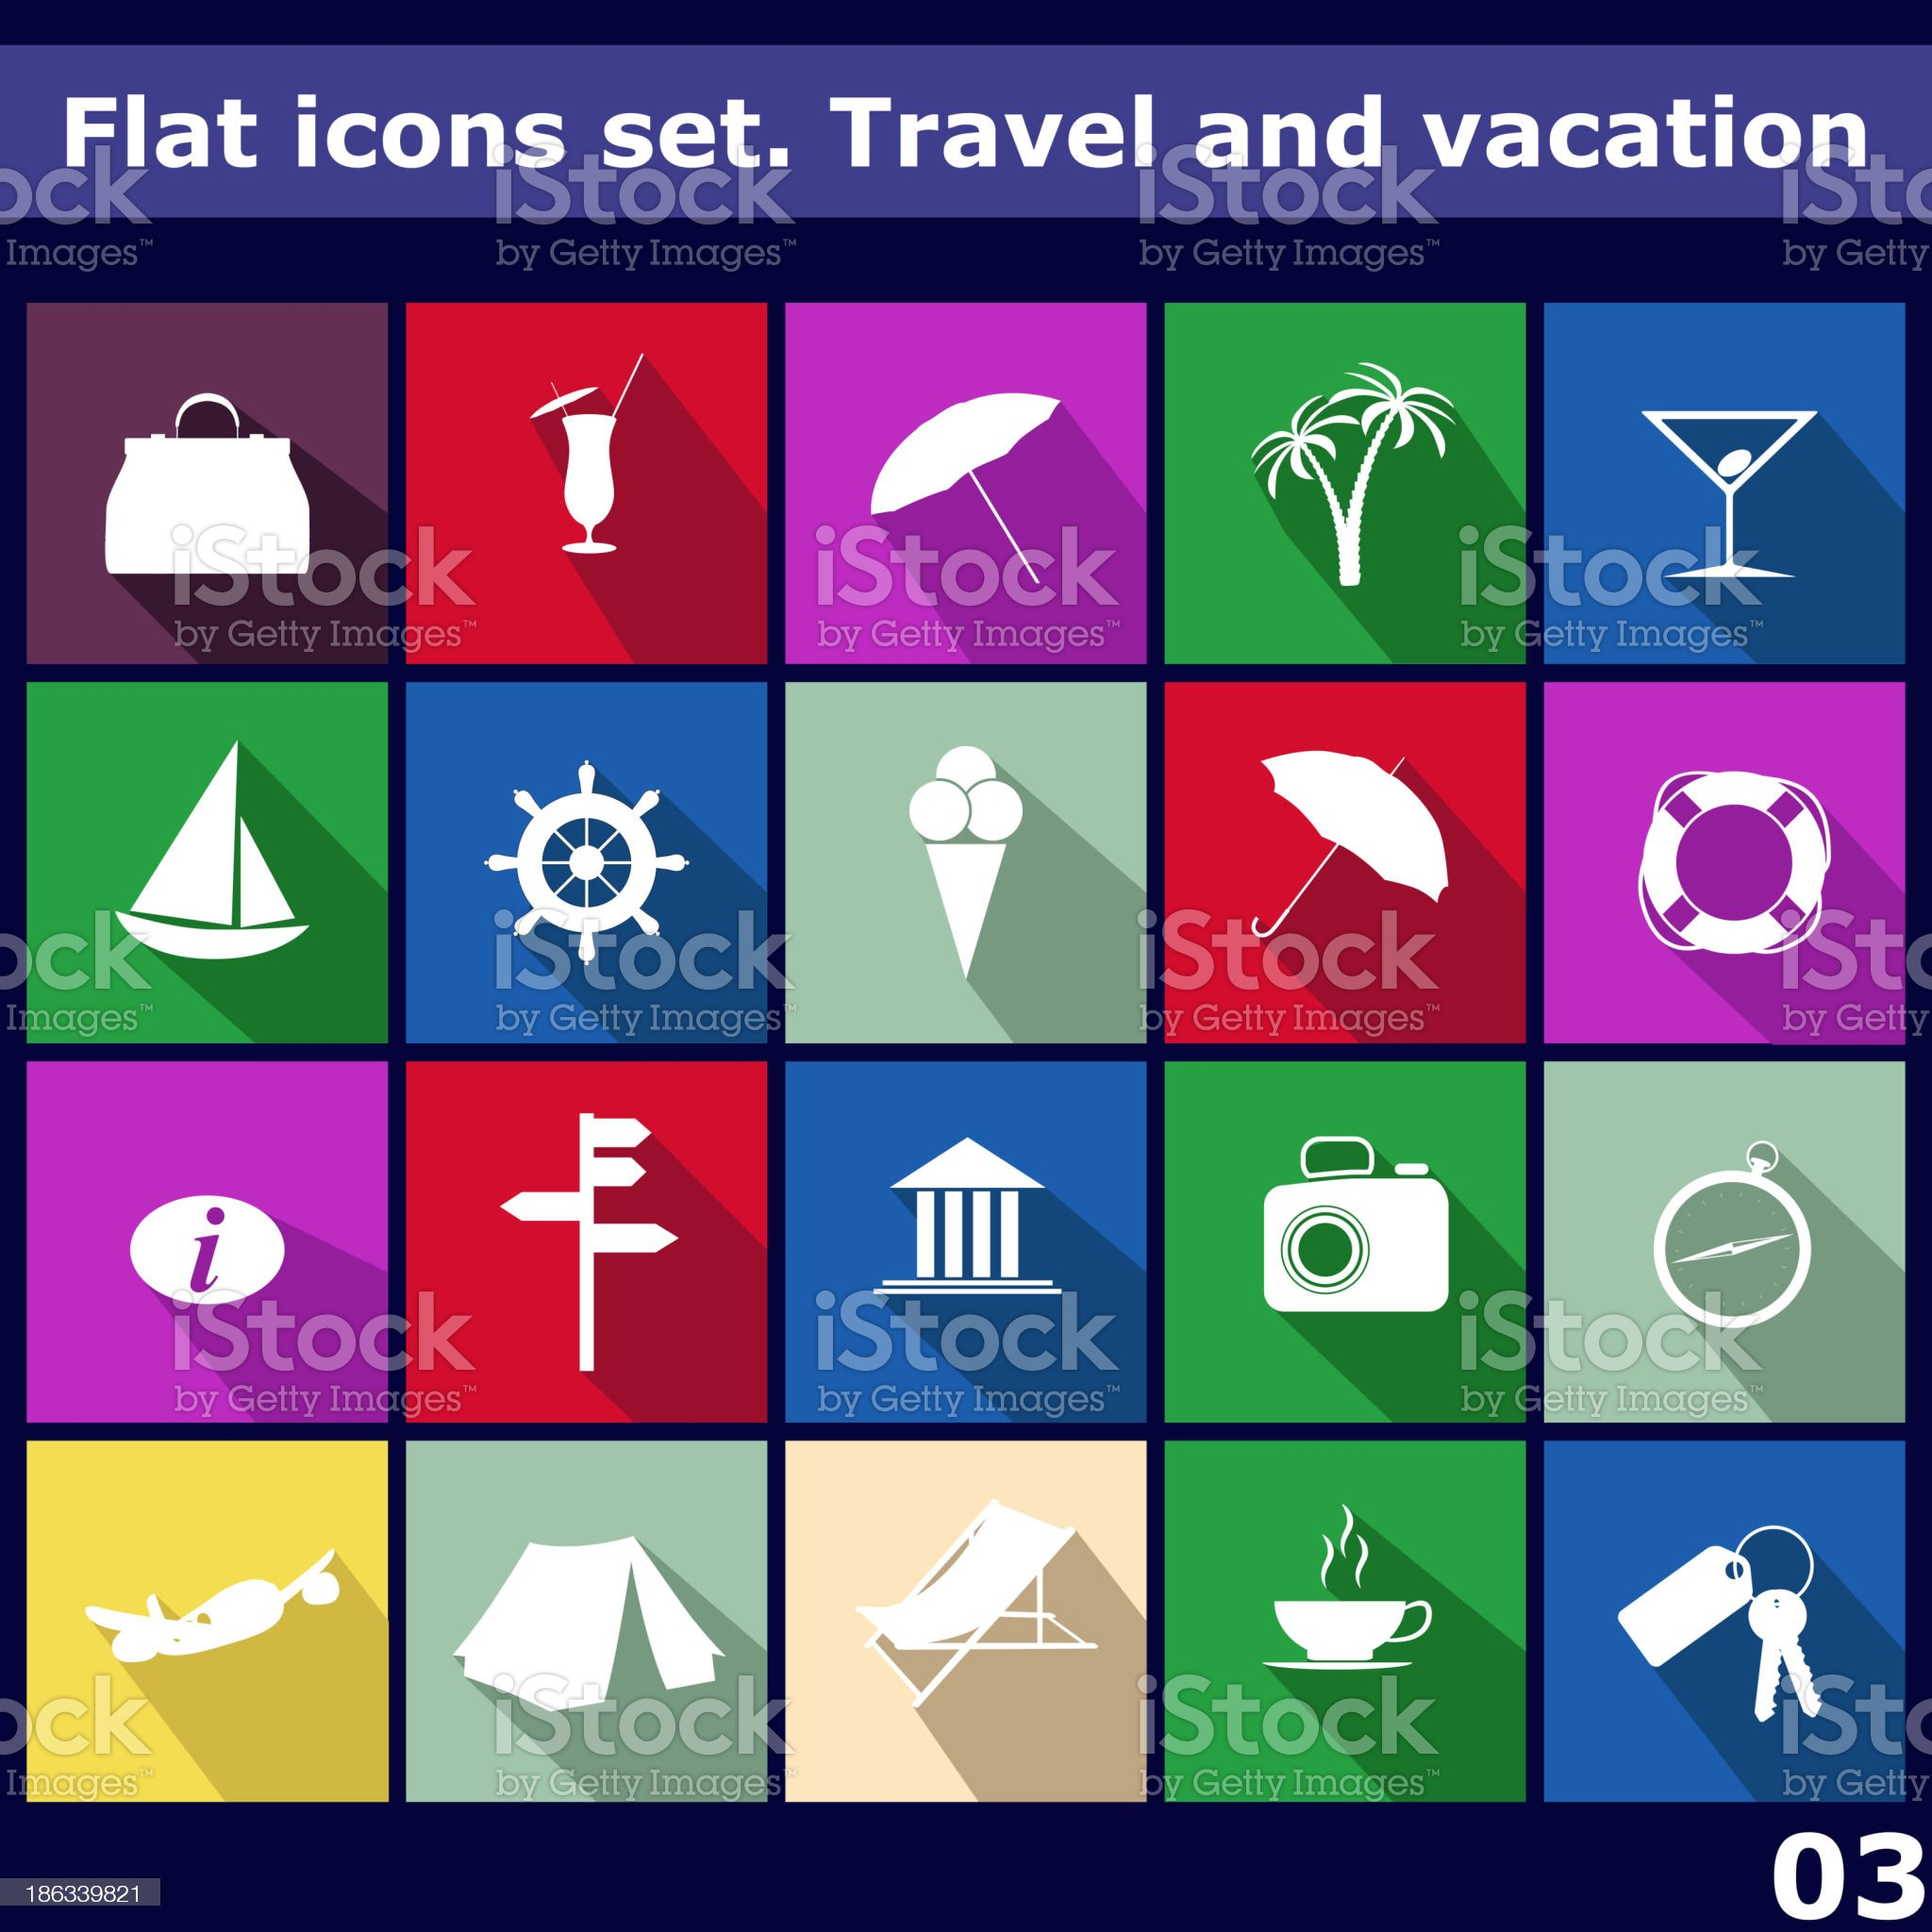 Traveling and vacarion Flat icons royalty-free stock vector art